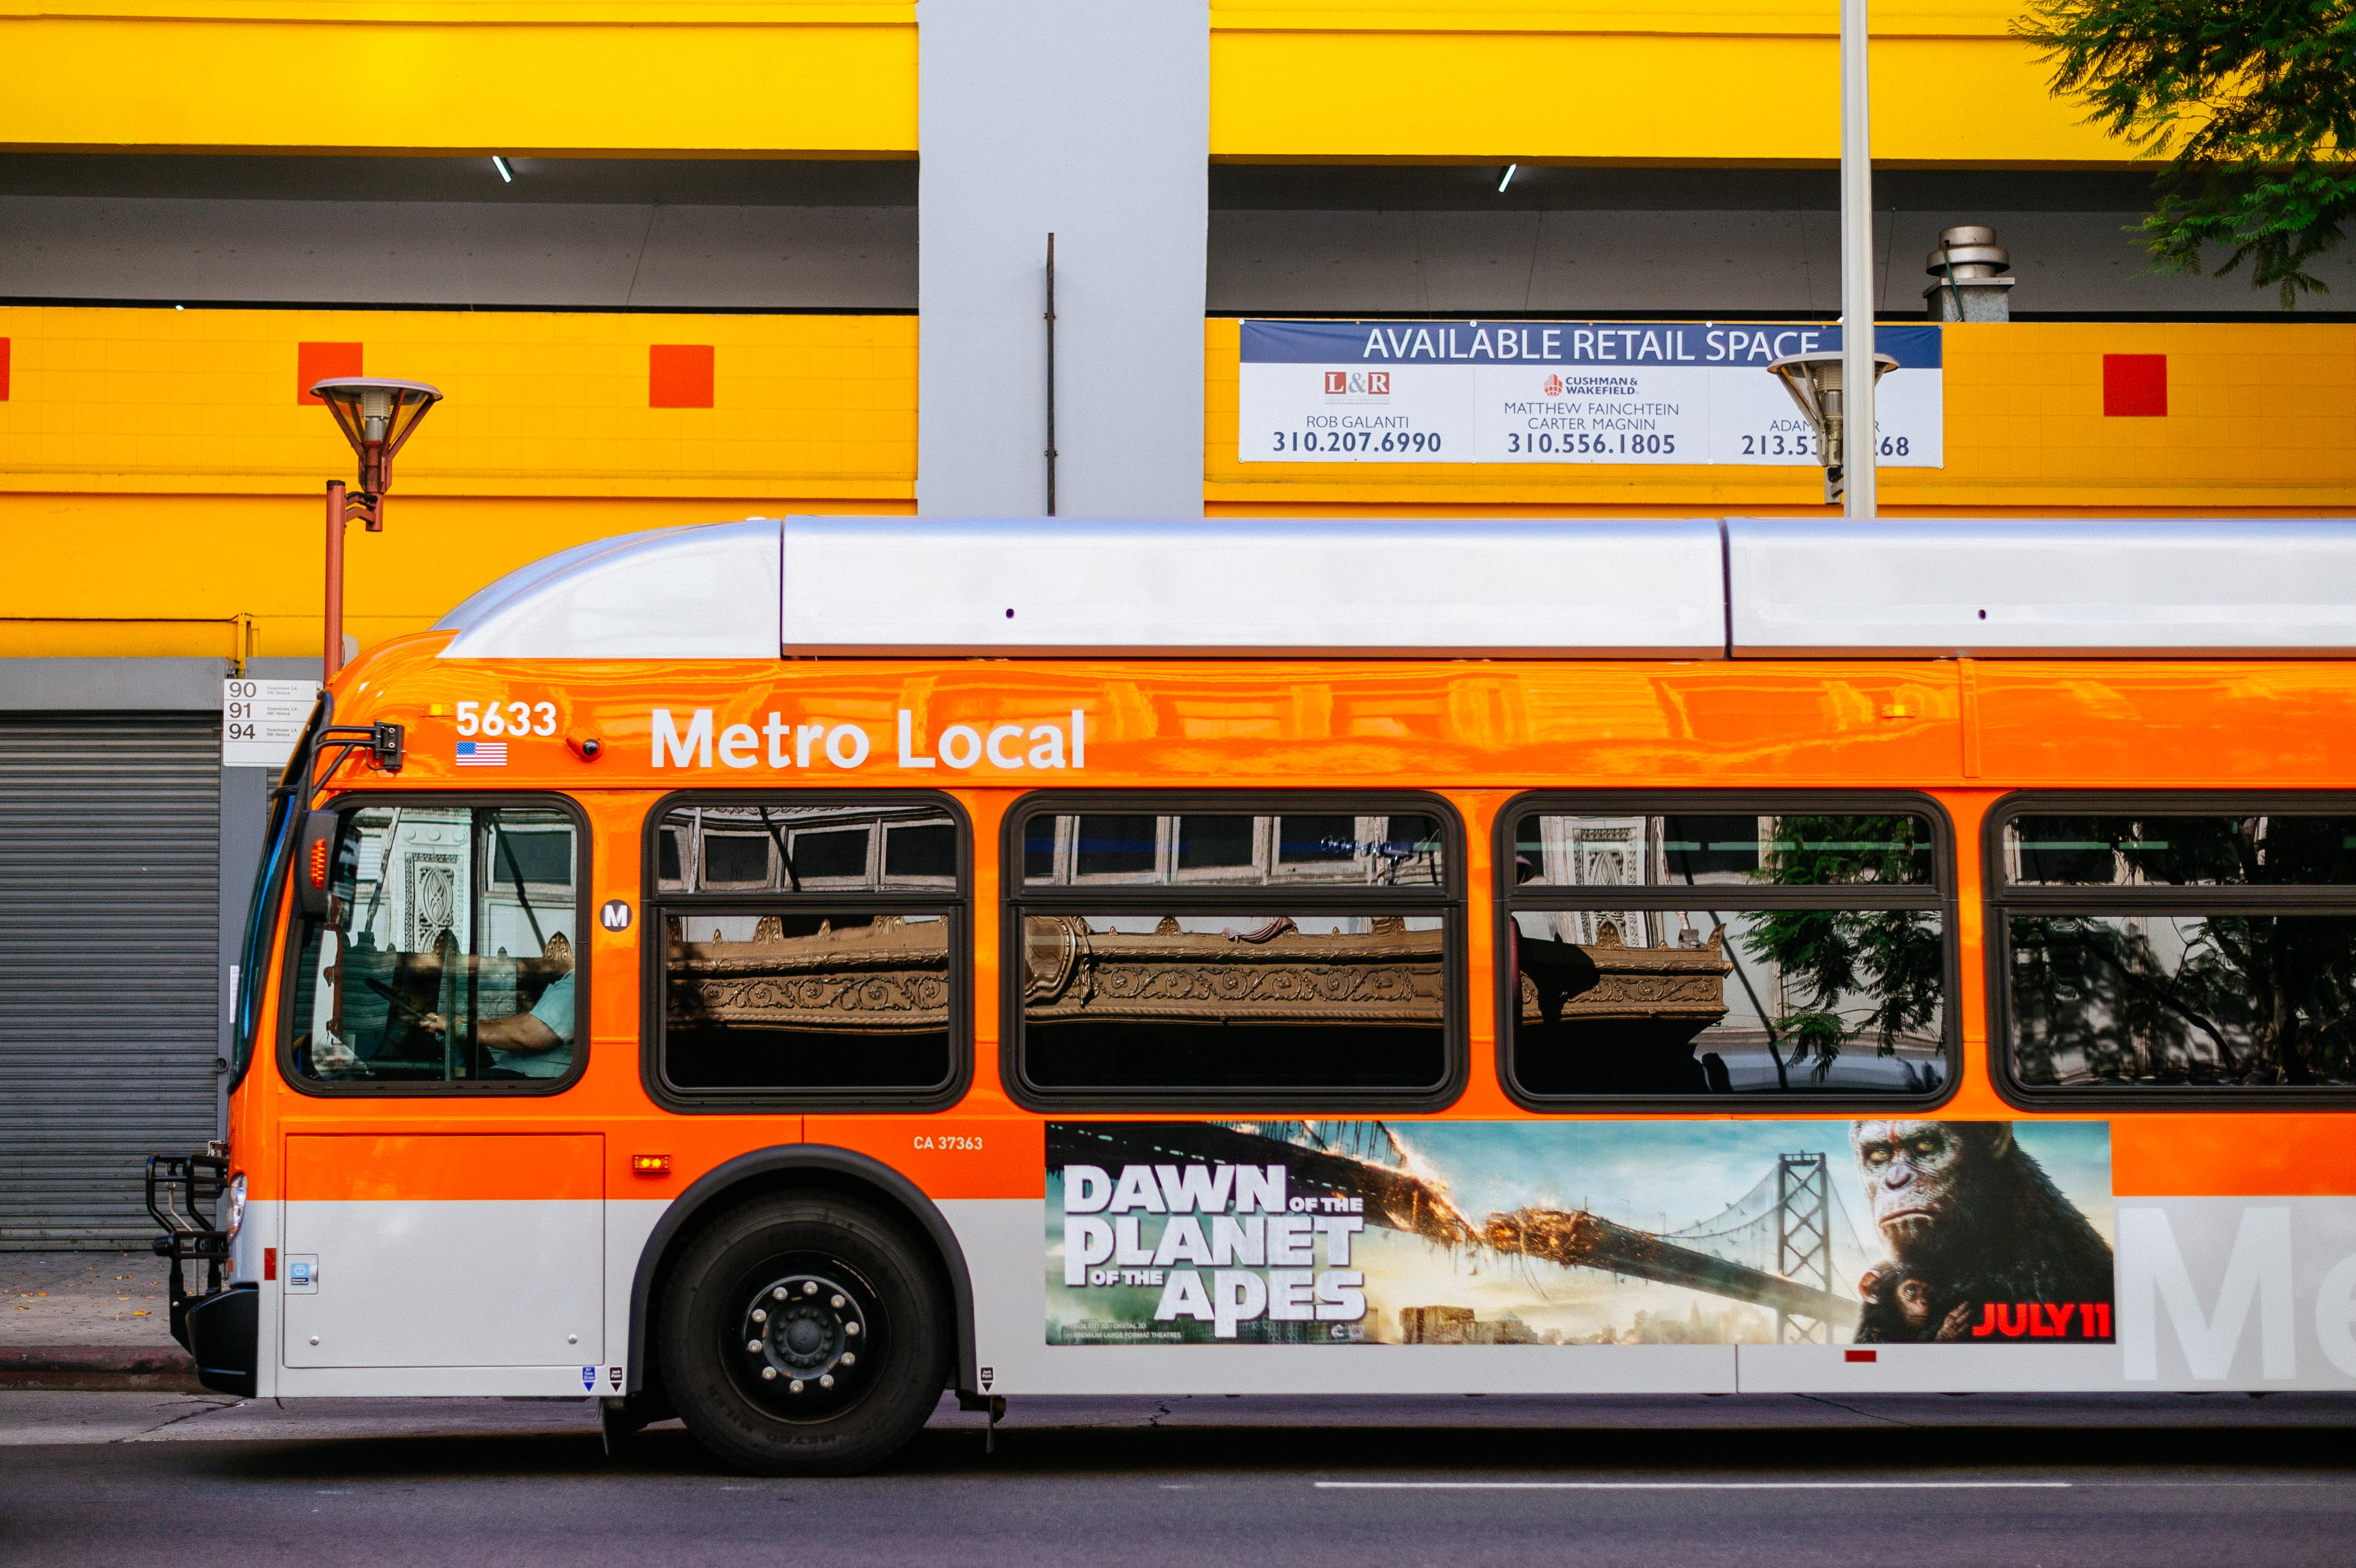 ART OF TRANSIT: Nice colors in DTLA. As for the movie ad, I know who I'm rooting for. #ApesTogetherStrong